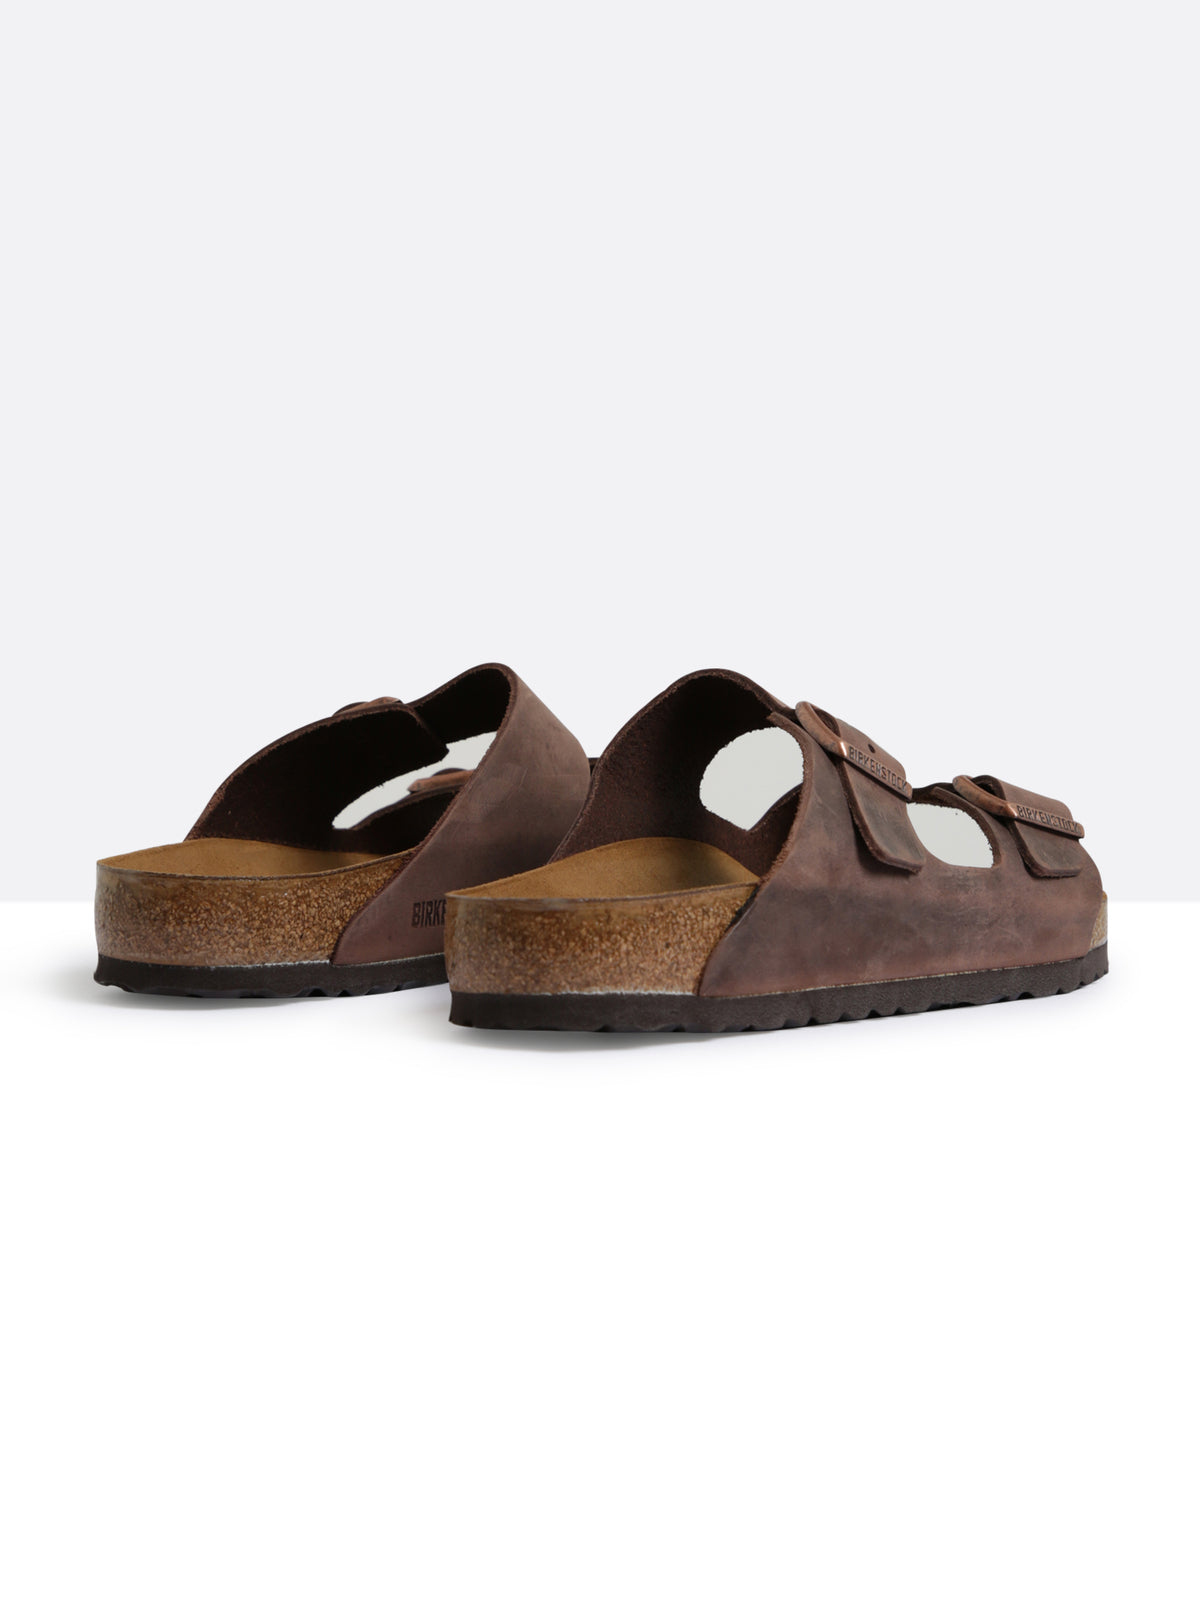 Mens Arizona Two-Strap Regular Width Sandals in Habana Brown Oiled Leather